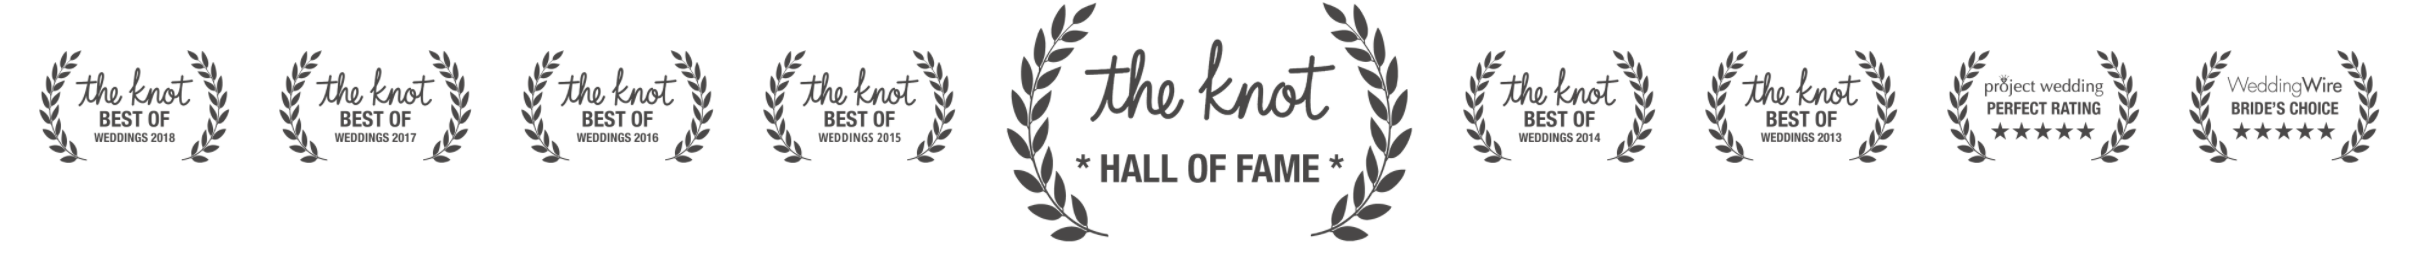 the knot hall of fame logo